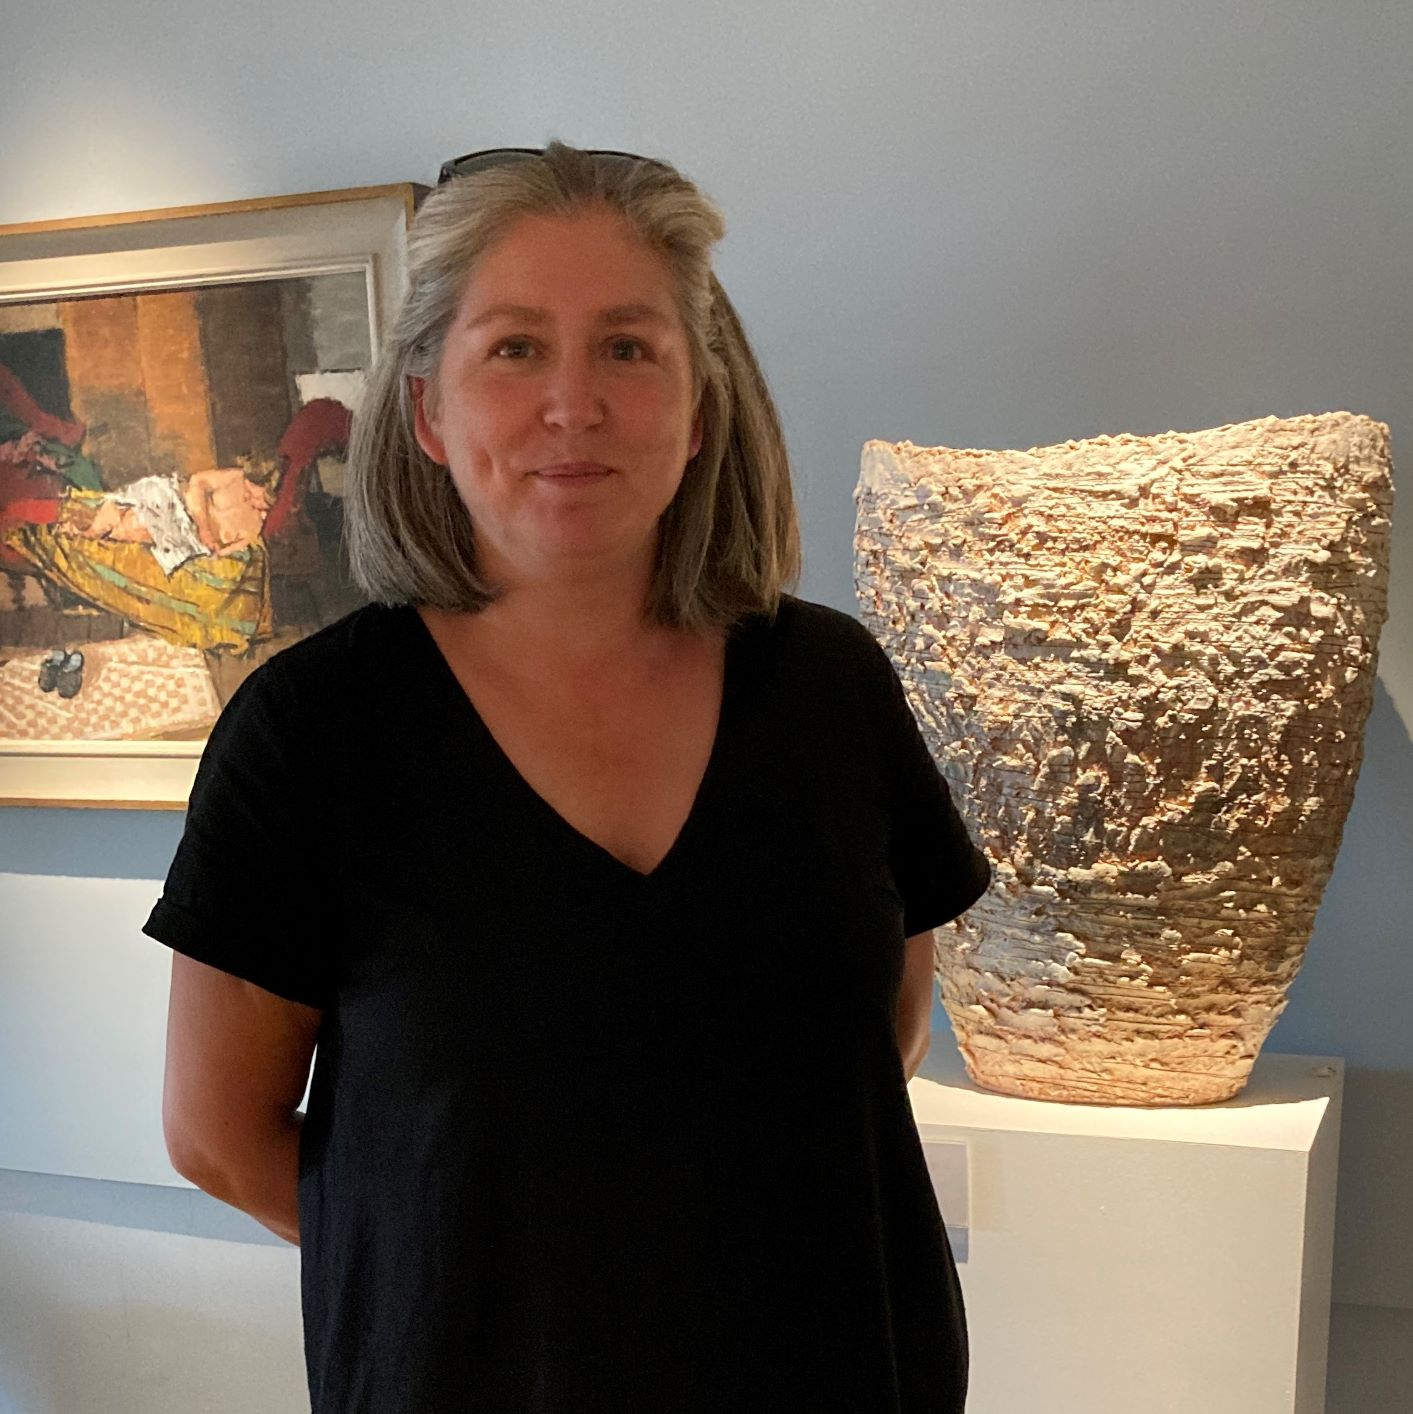 Woman, standing in front of a ceramic sculpture and a oil painting